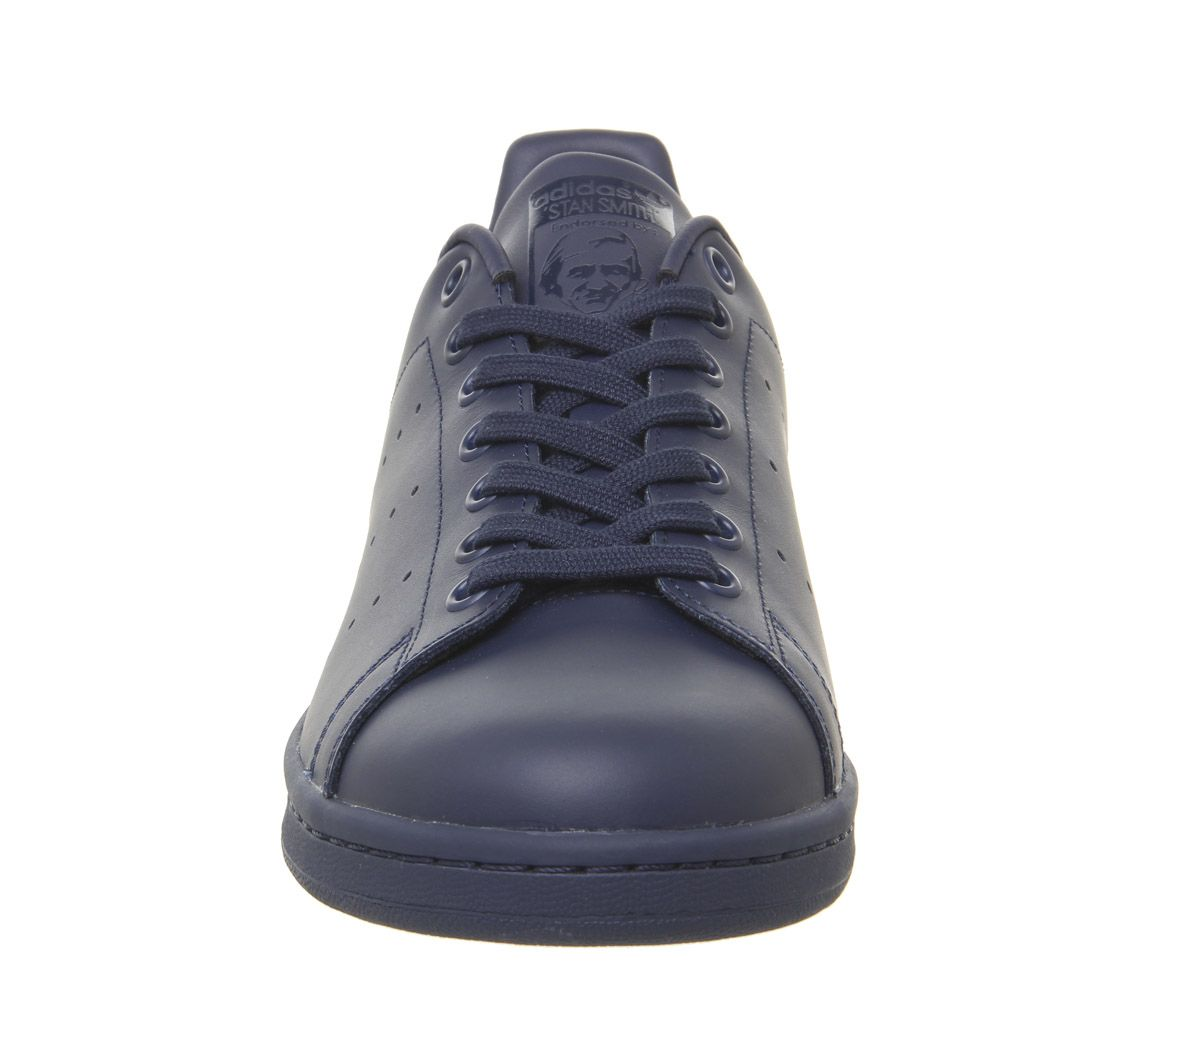 new style 8b8dd e7284 Details about Adidas Stan Smith Trainers Navy Leather Mono Trainers Shoes